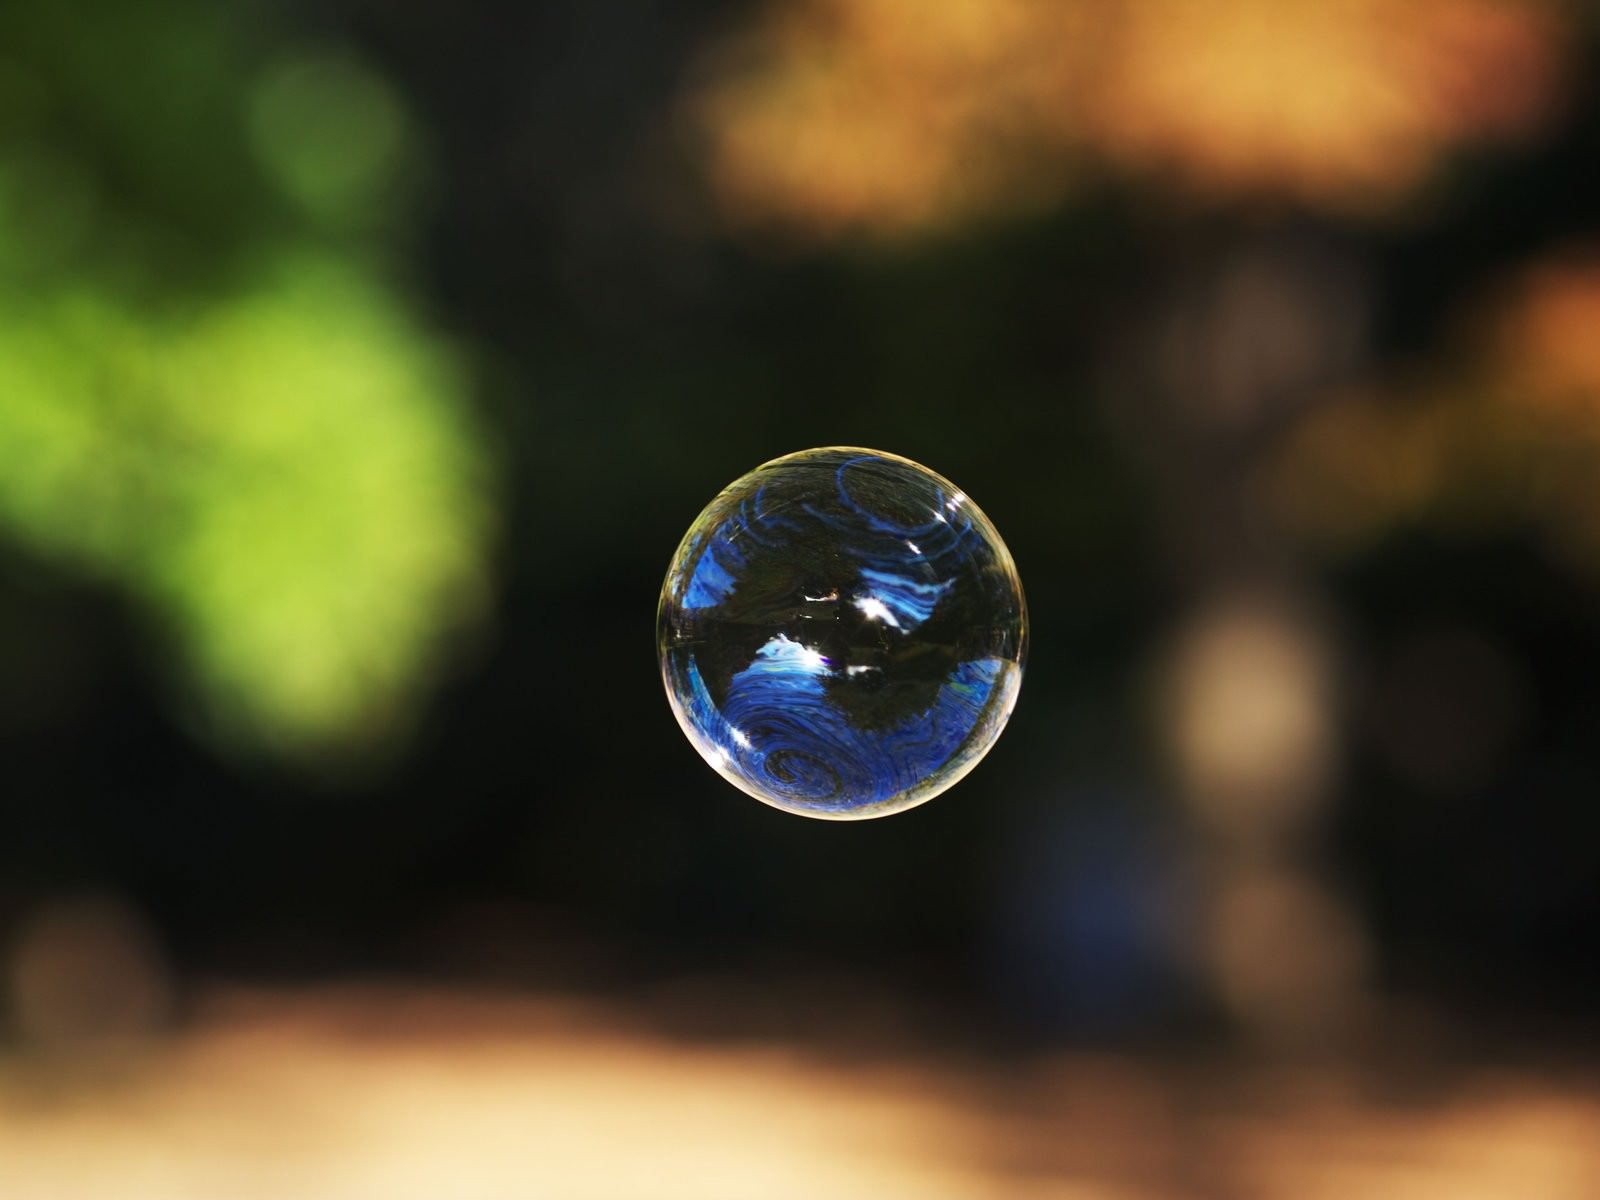 Bubble on Blurred Background